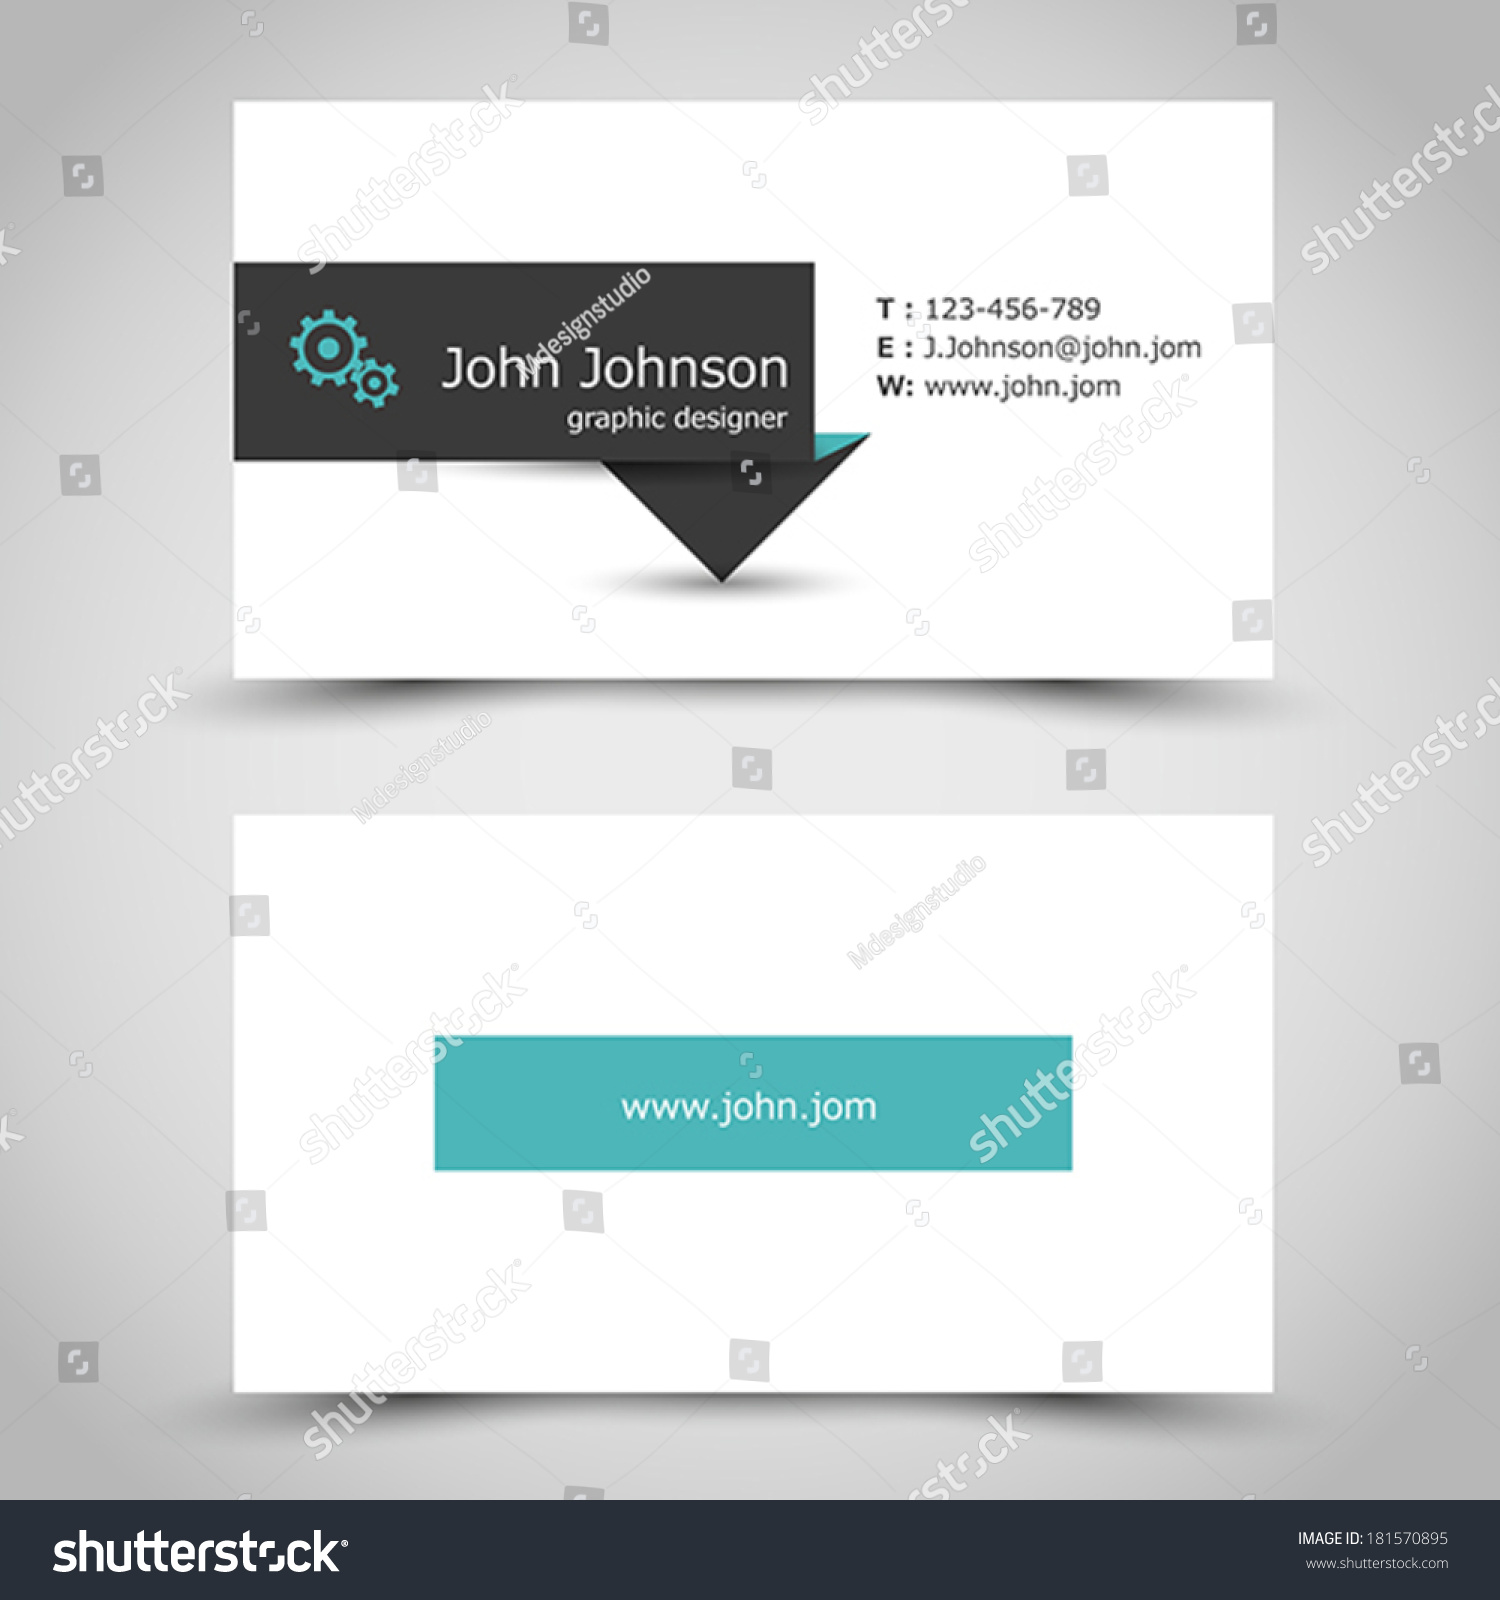 Turquoise Business Card Dark Sticker Office Stock Vector 181570895 ...